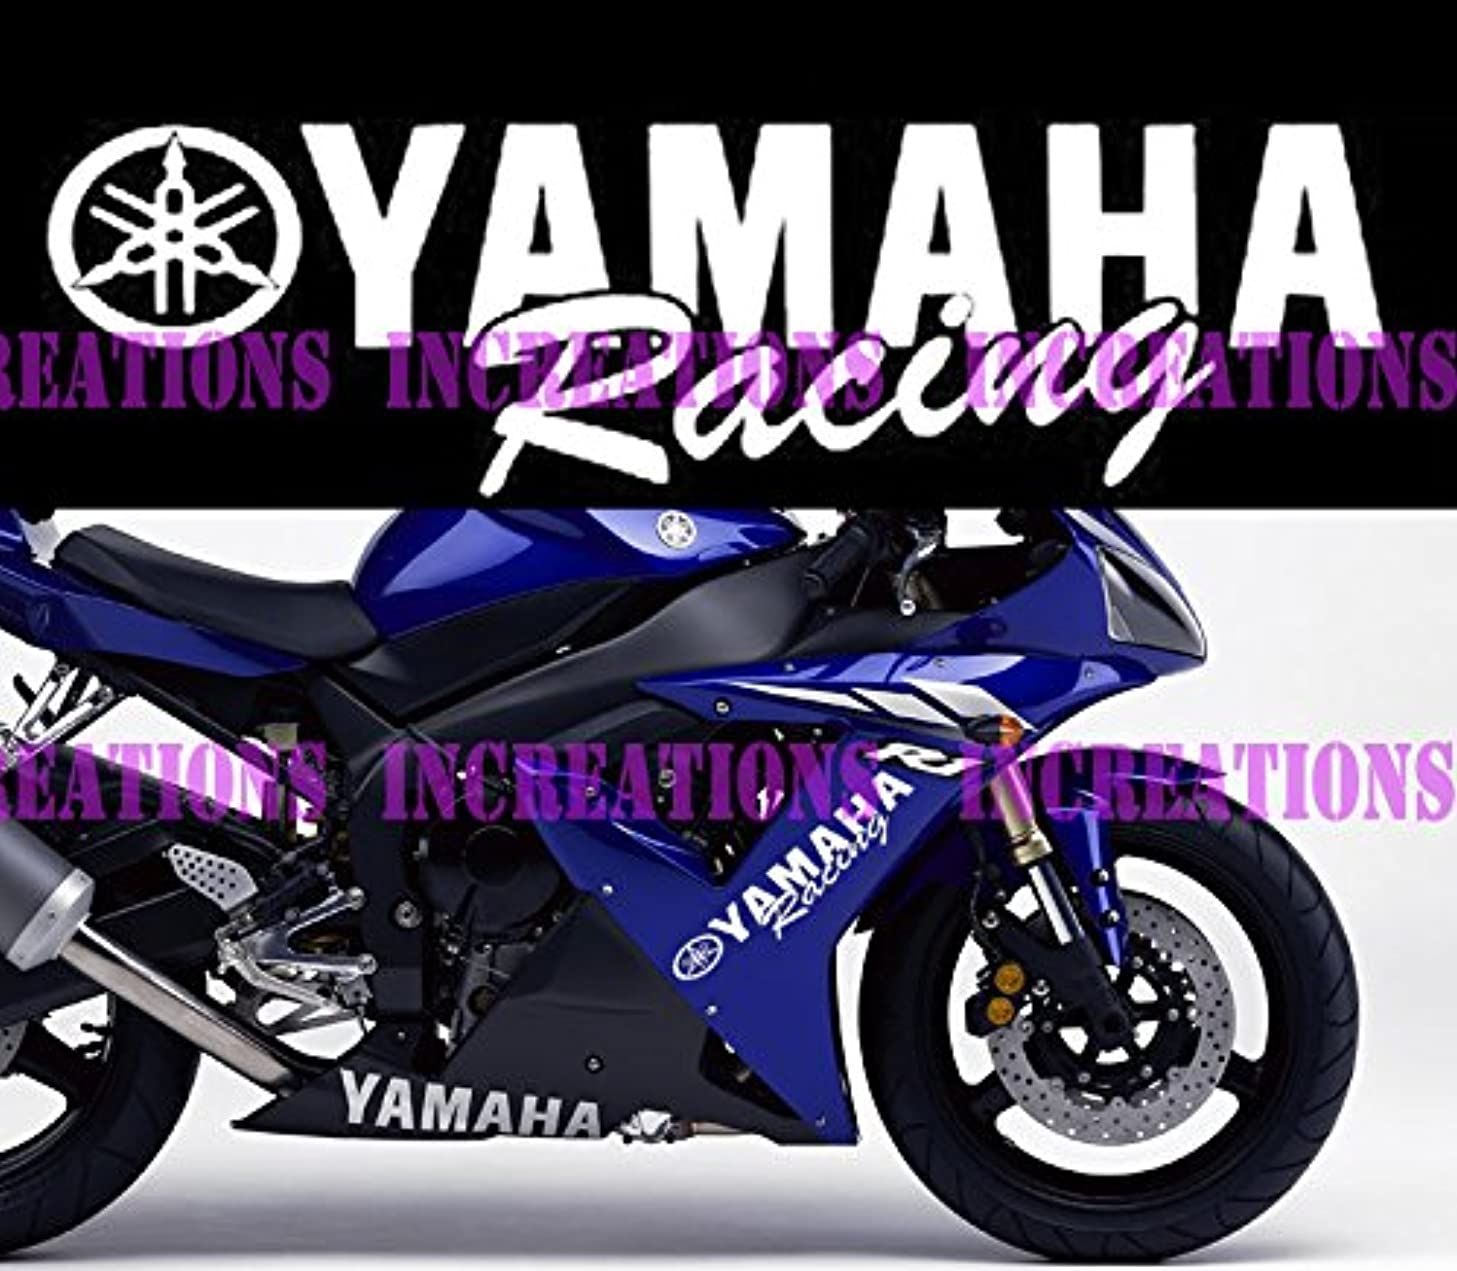 Yamaha Logo Racing Decals Motorcycle Side Stickers Set Of 2 (White)